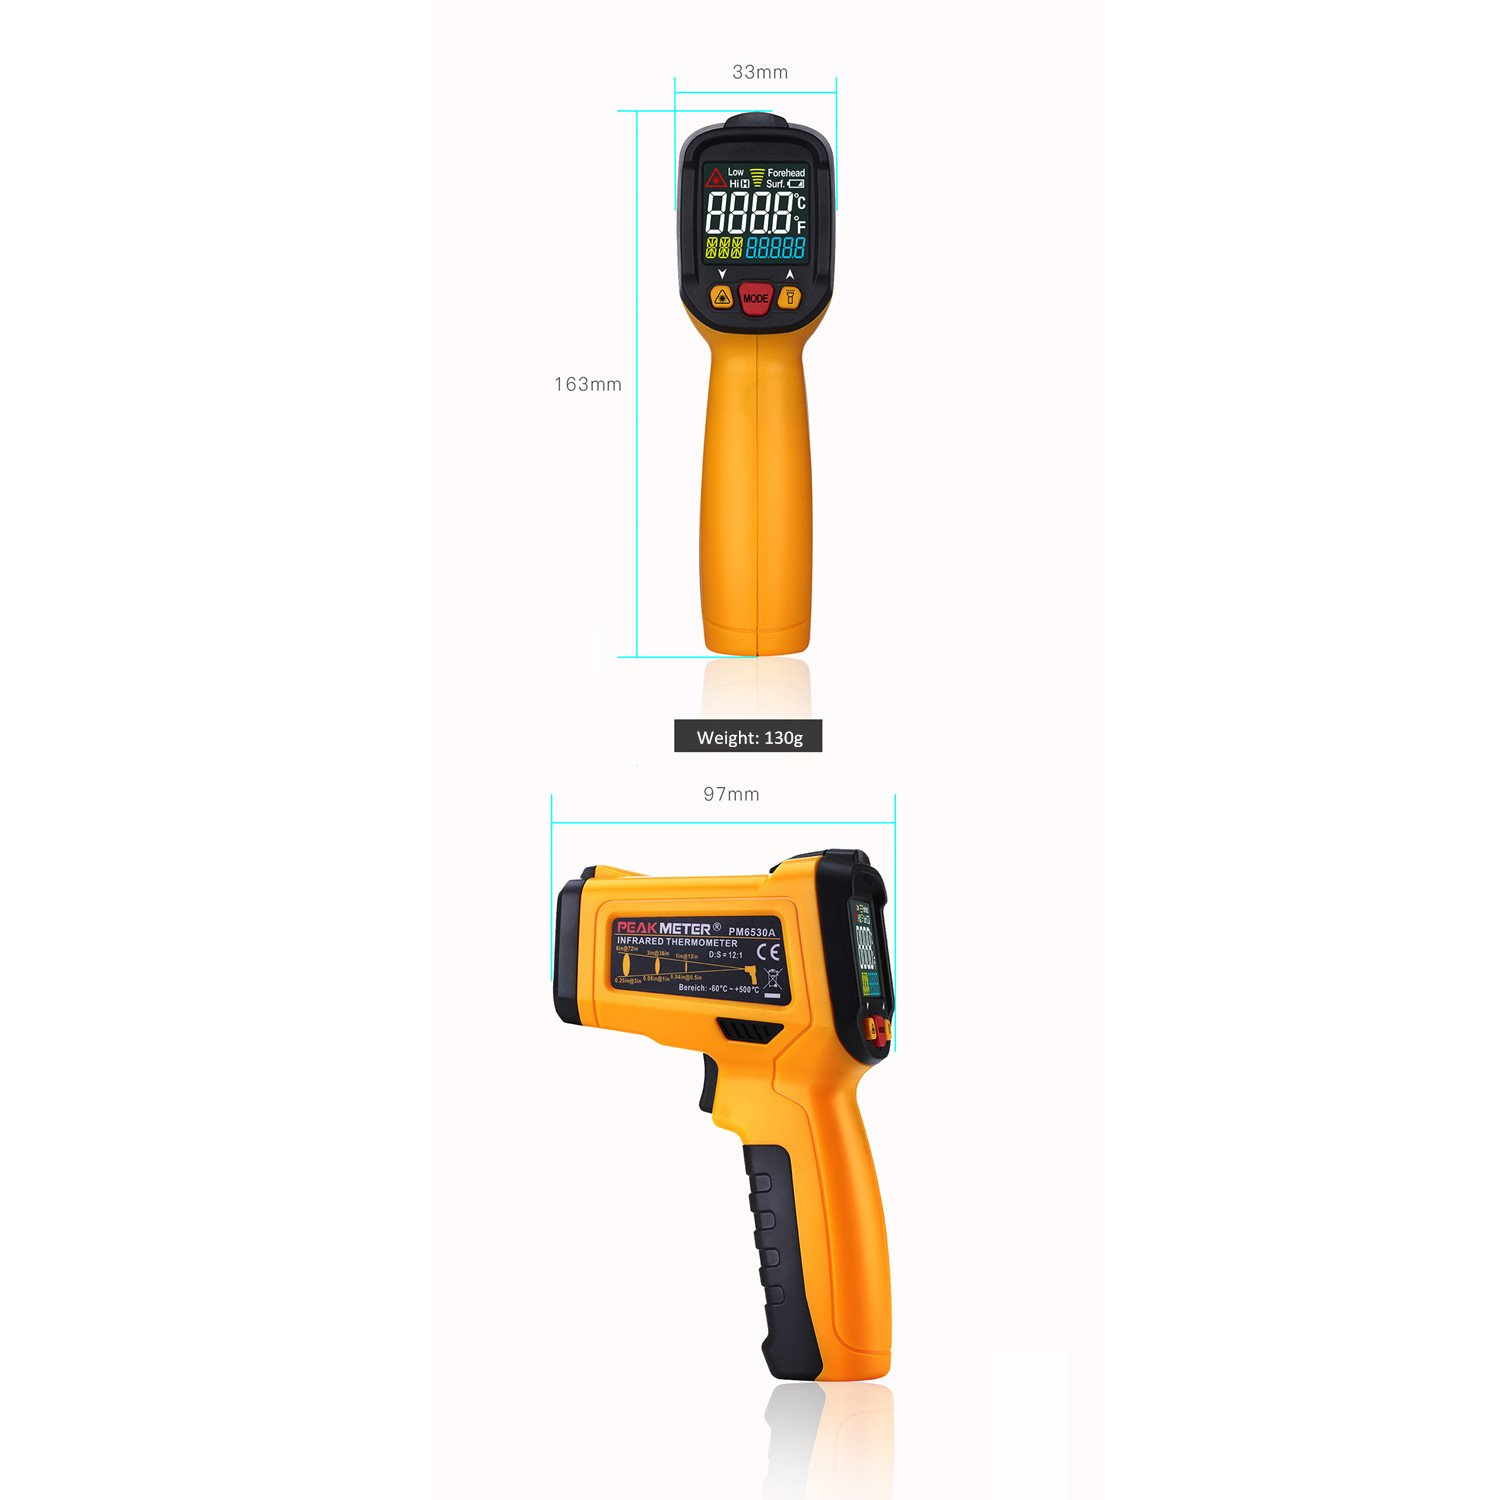 Digital Infrared thermometer Peakmeter PM6530A Laser IR Temperature Gun LCD for Kitchen Cooking Automotive with Temperature Bridge Alarm Function Display -58°F~572°F(-50°C~300°C) by uvcetech (Image #6)